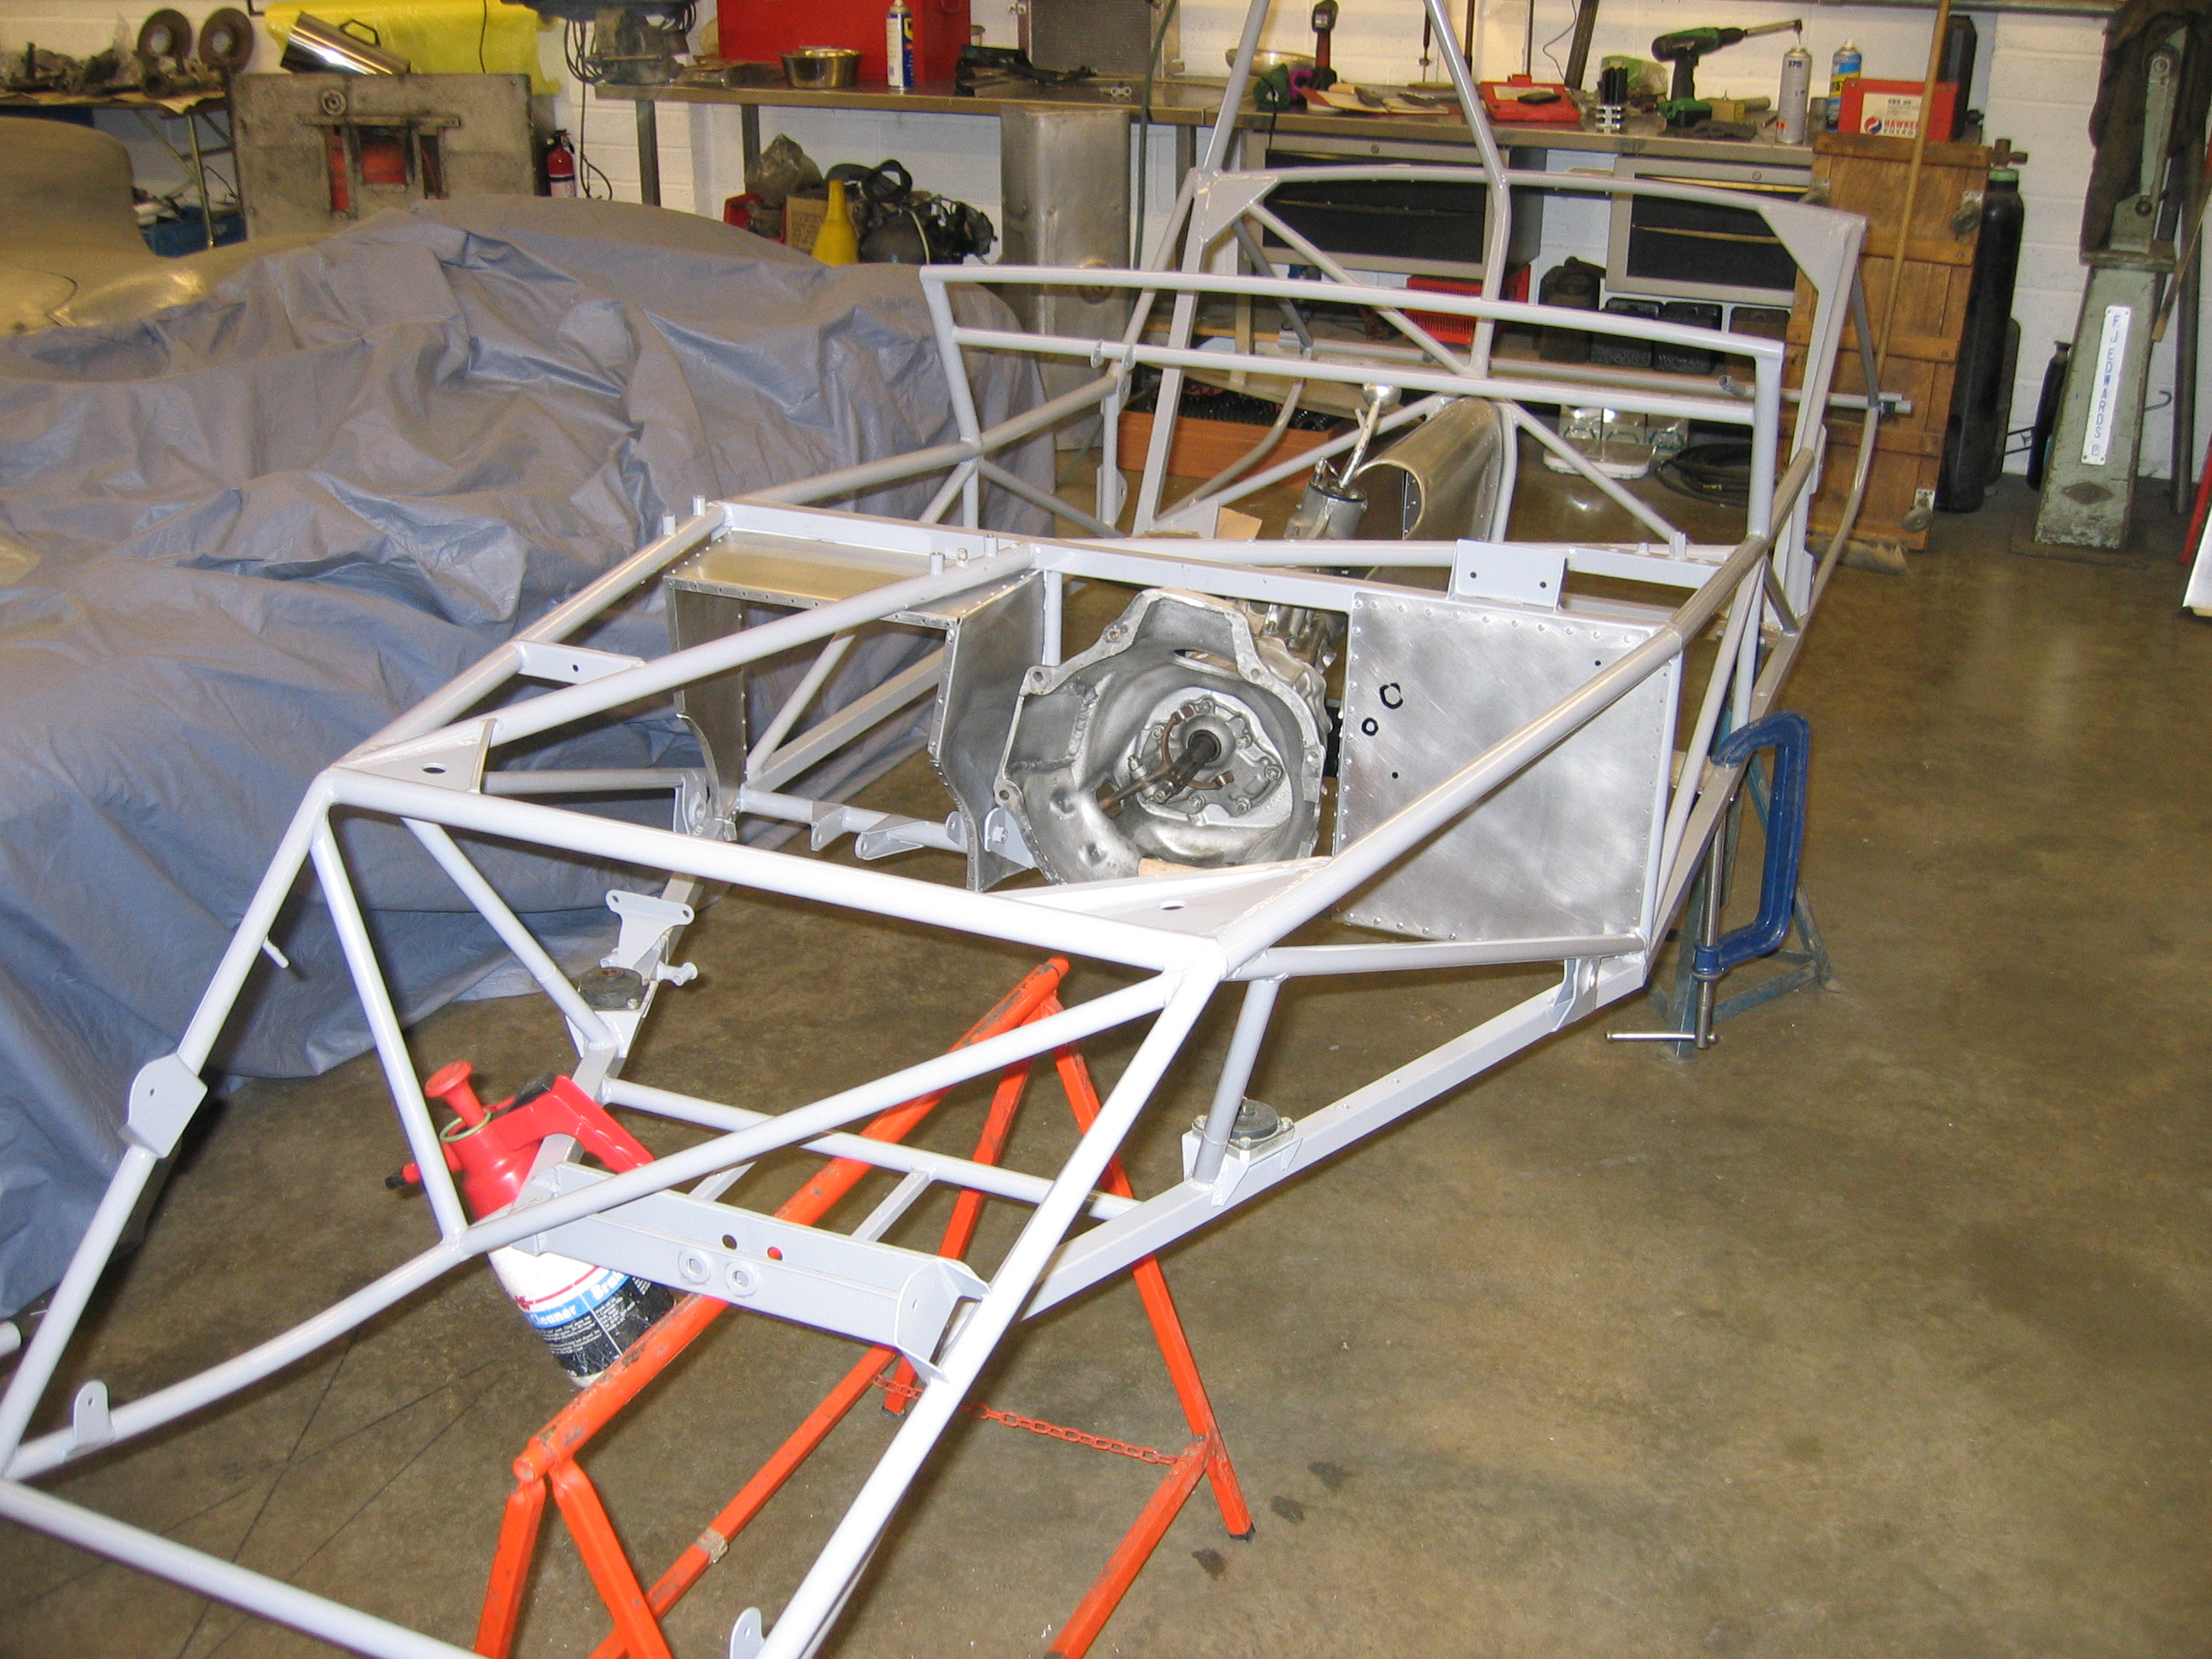 A new Lotus 11 chassis being assembled